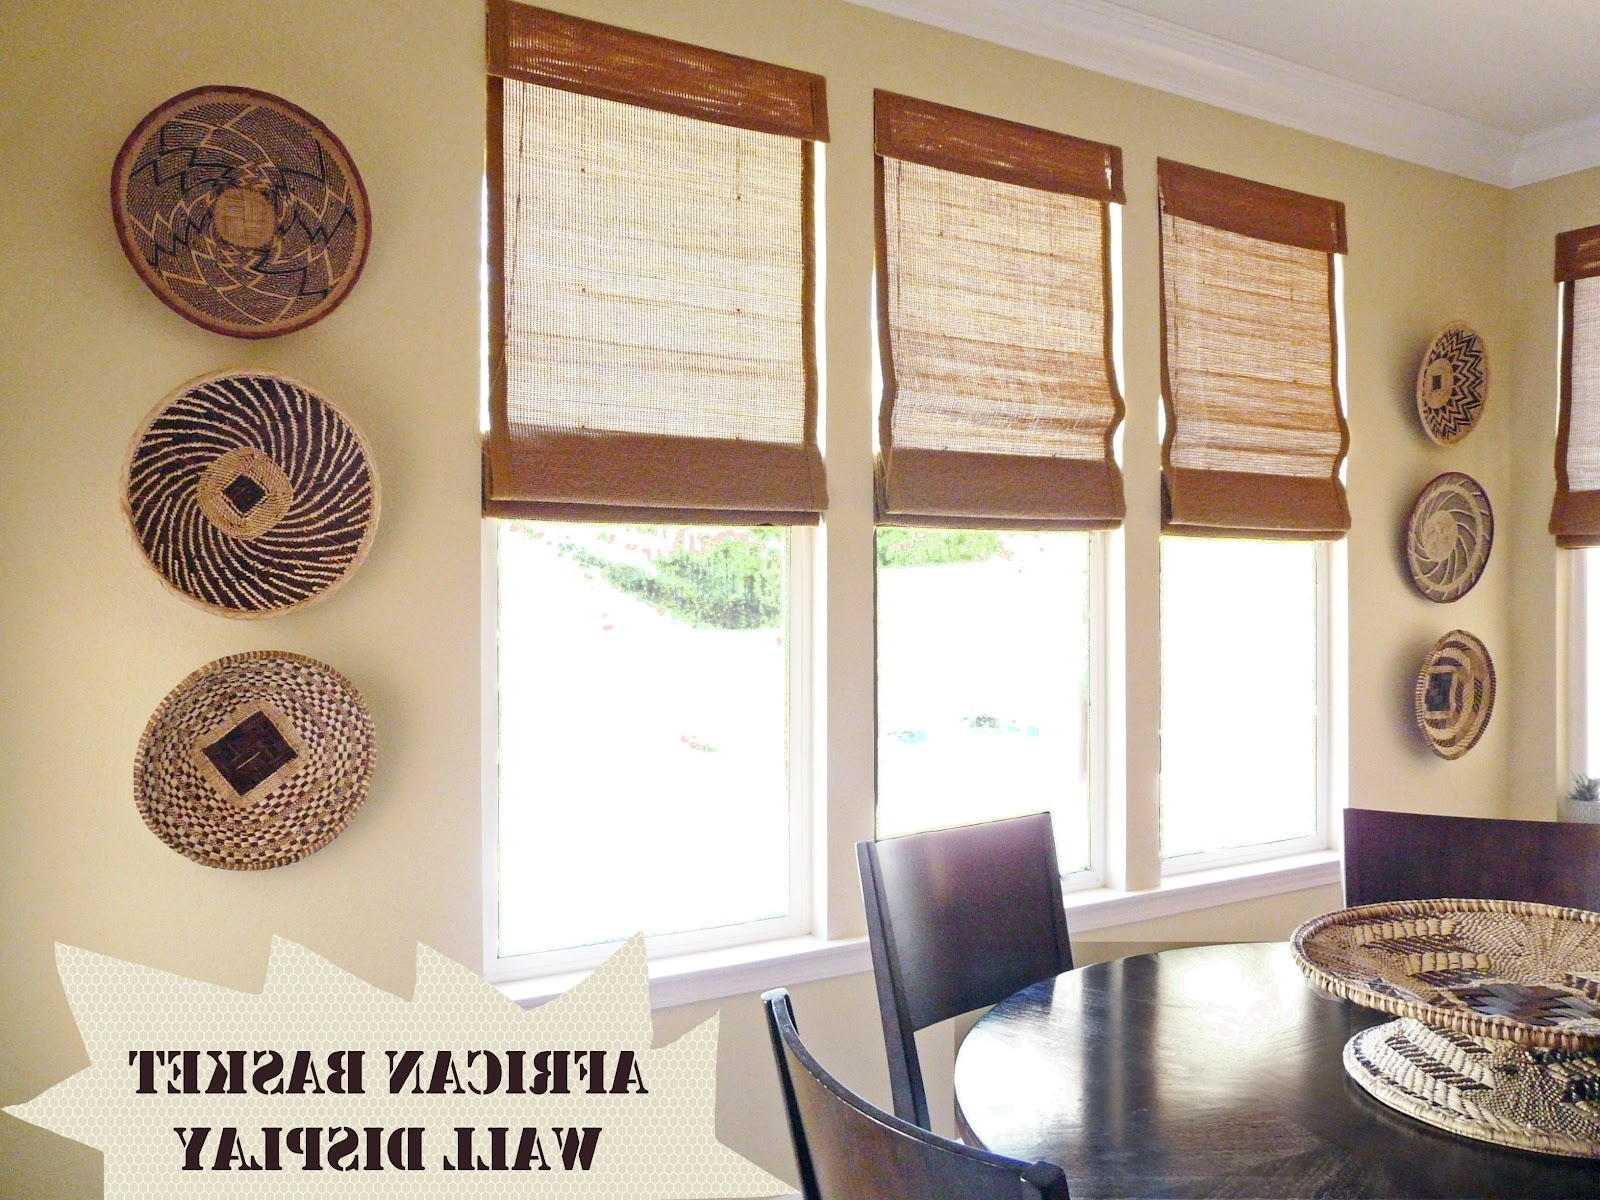 [%home] African Basket Wall Decor Within Well Known Woven Basket Wall Art|woven Basket Wall Art Throughout Well Liked Home] African Basket Wall Decor|famous Woven Basket Wall Art Throughout Home] African Basket Wall Decor|2017 Home] African Basket Wall Decor Throughout Woven Basket Wall Art%] (View 10 of 20)